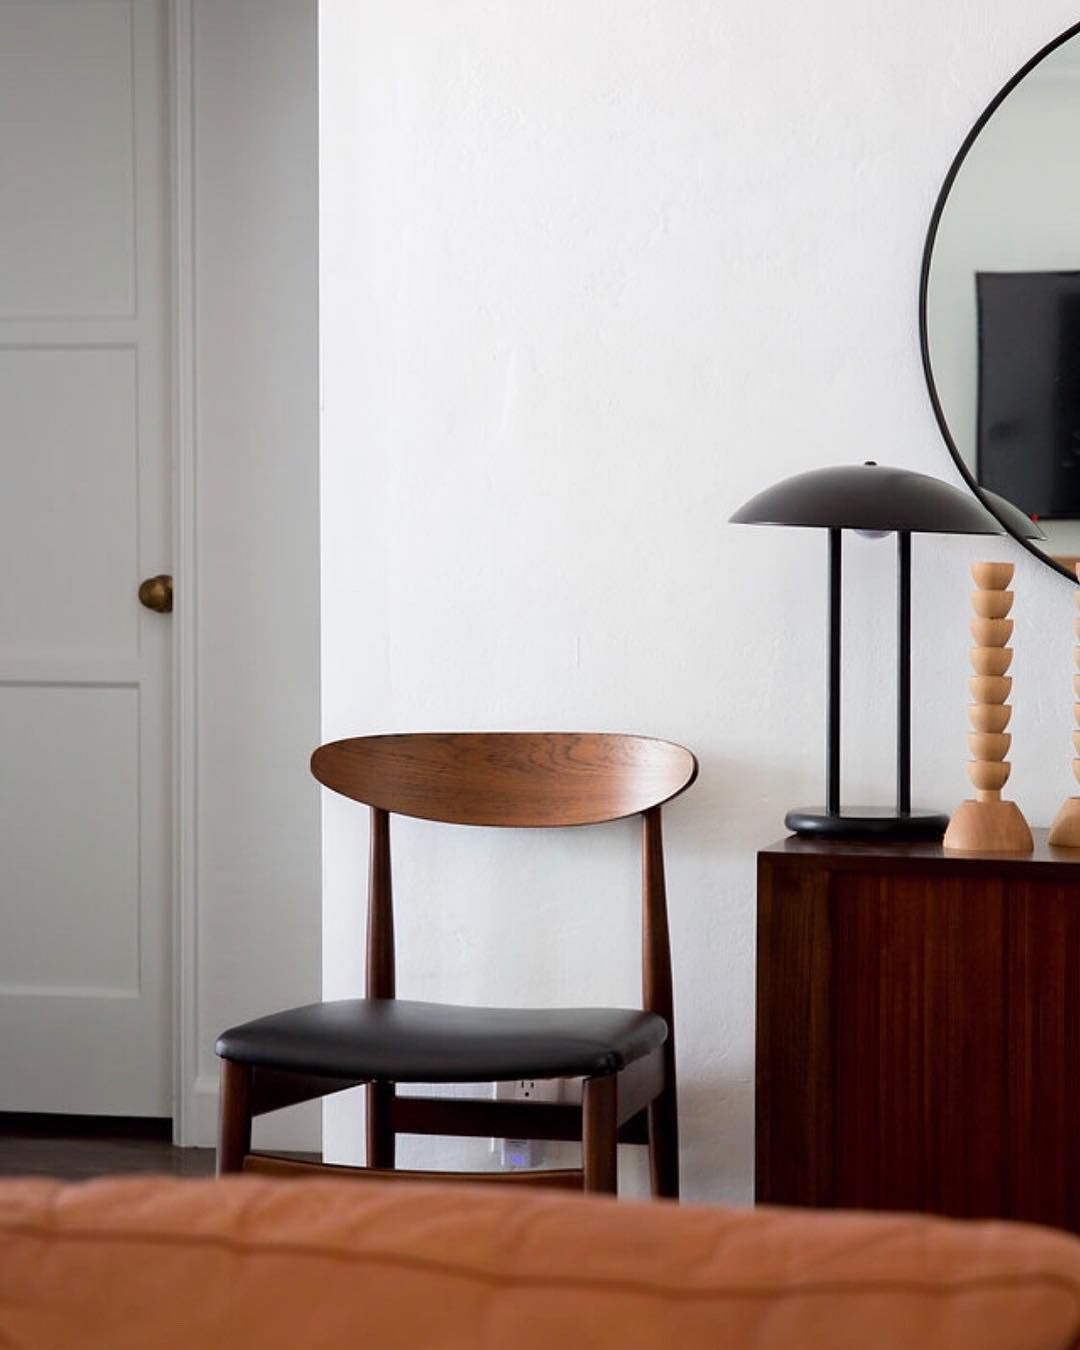 Midcentury chair in a room